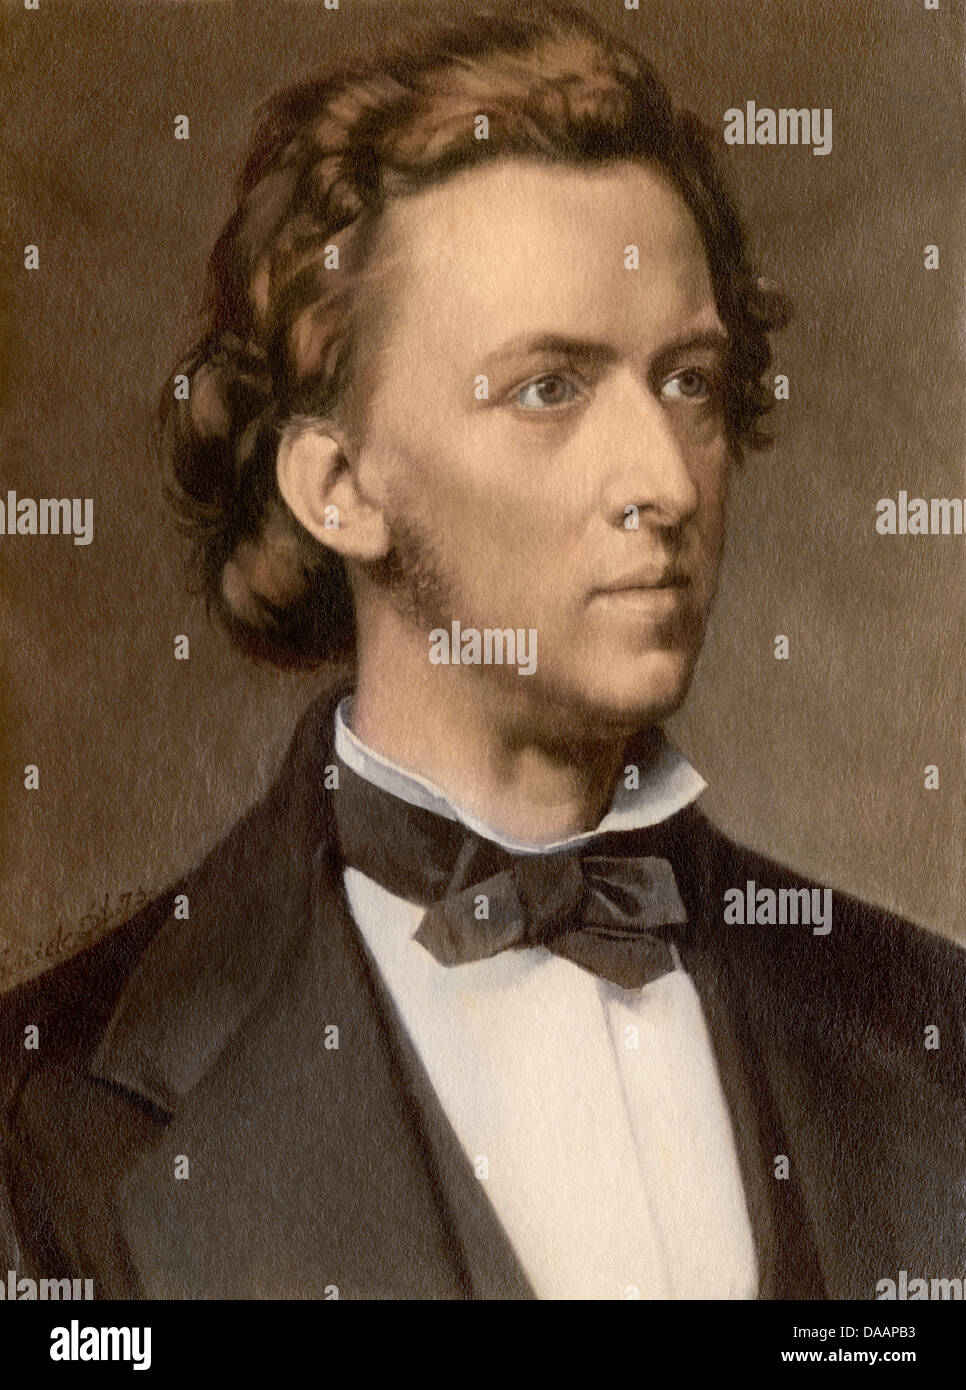 Composer and pianist Frederic Chopin. Digitally colored photograph - Stock Image